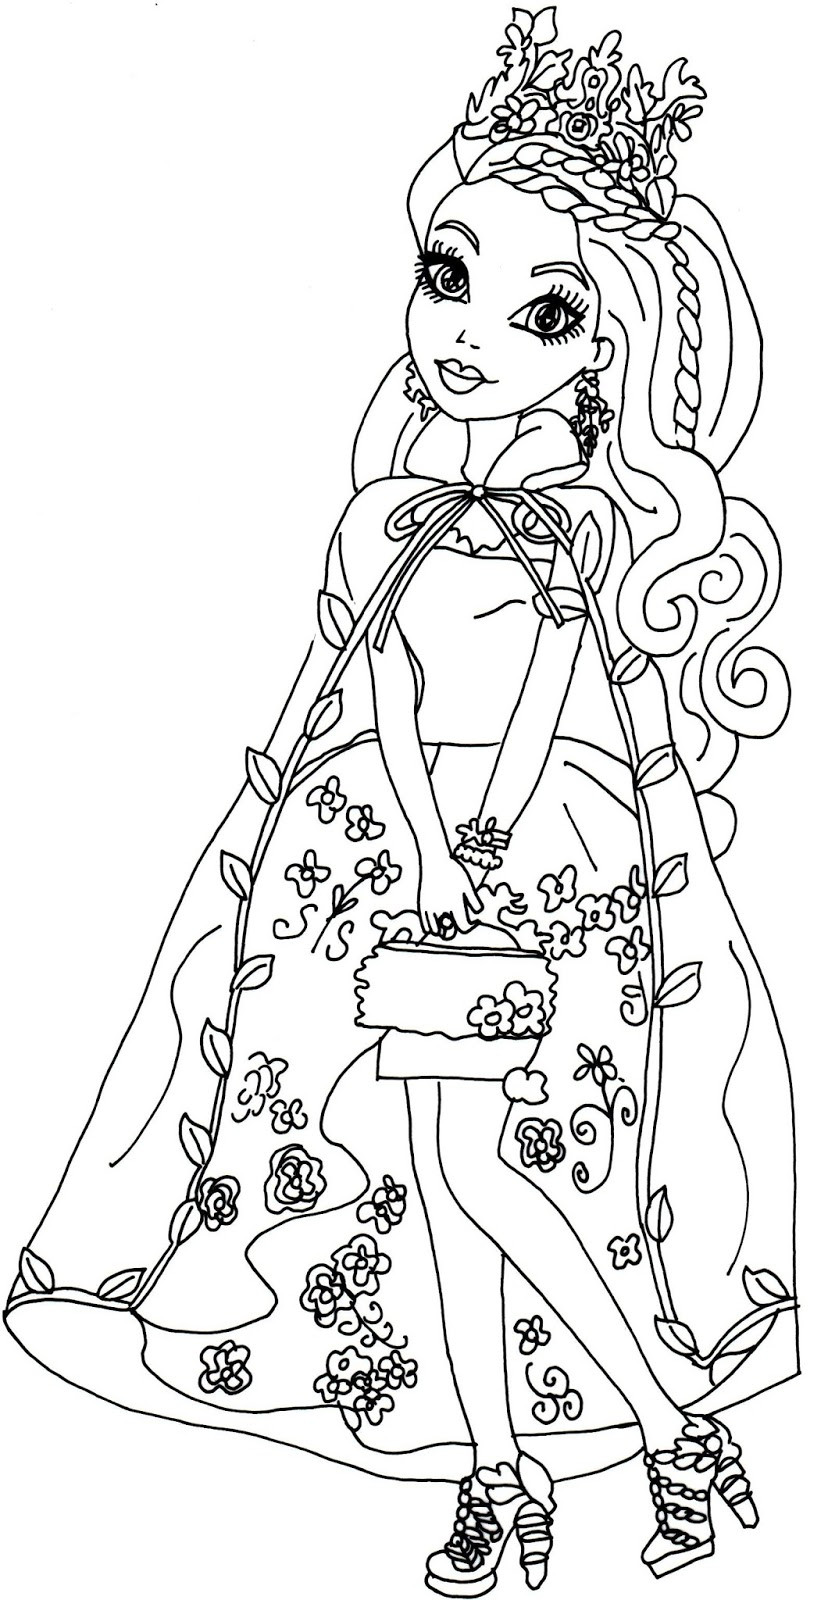 Free Coloring Sheets To Print  Ever After High Coloring Pages Best Coloring Pages For Kids